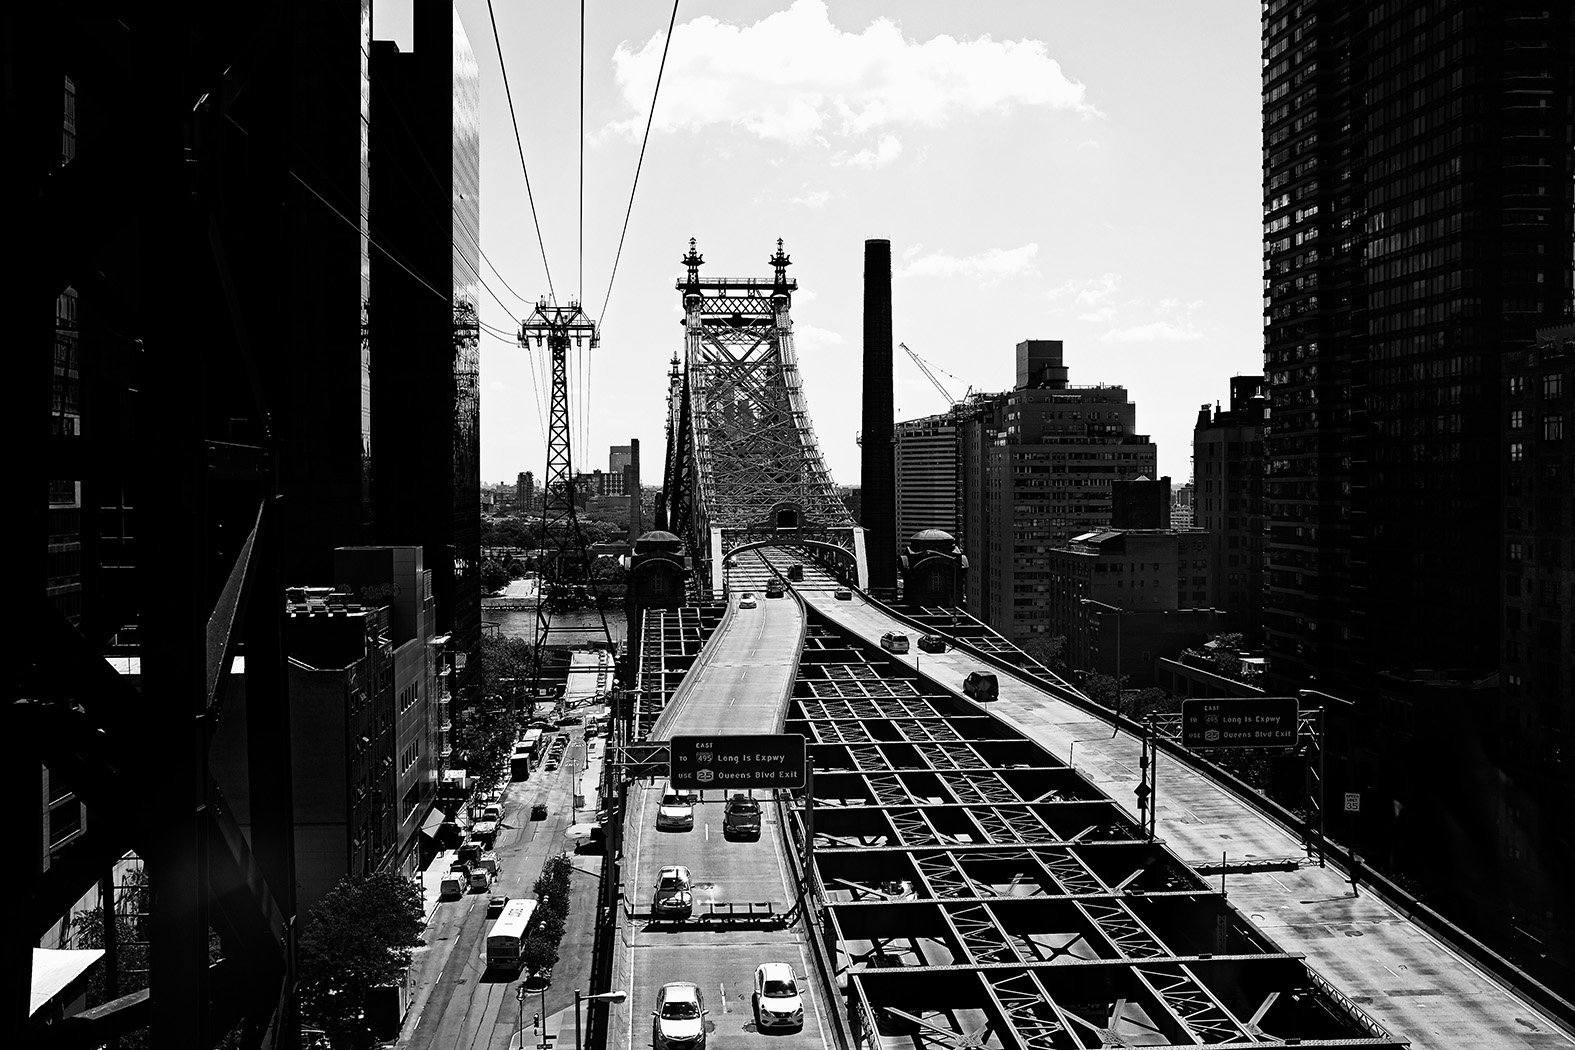 Rooseveldt Tramway, NYC